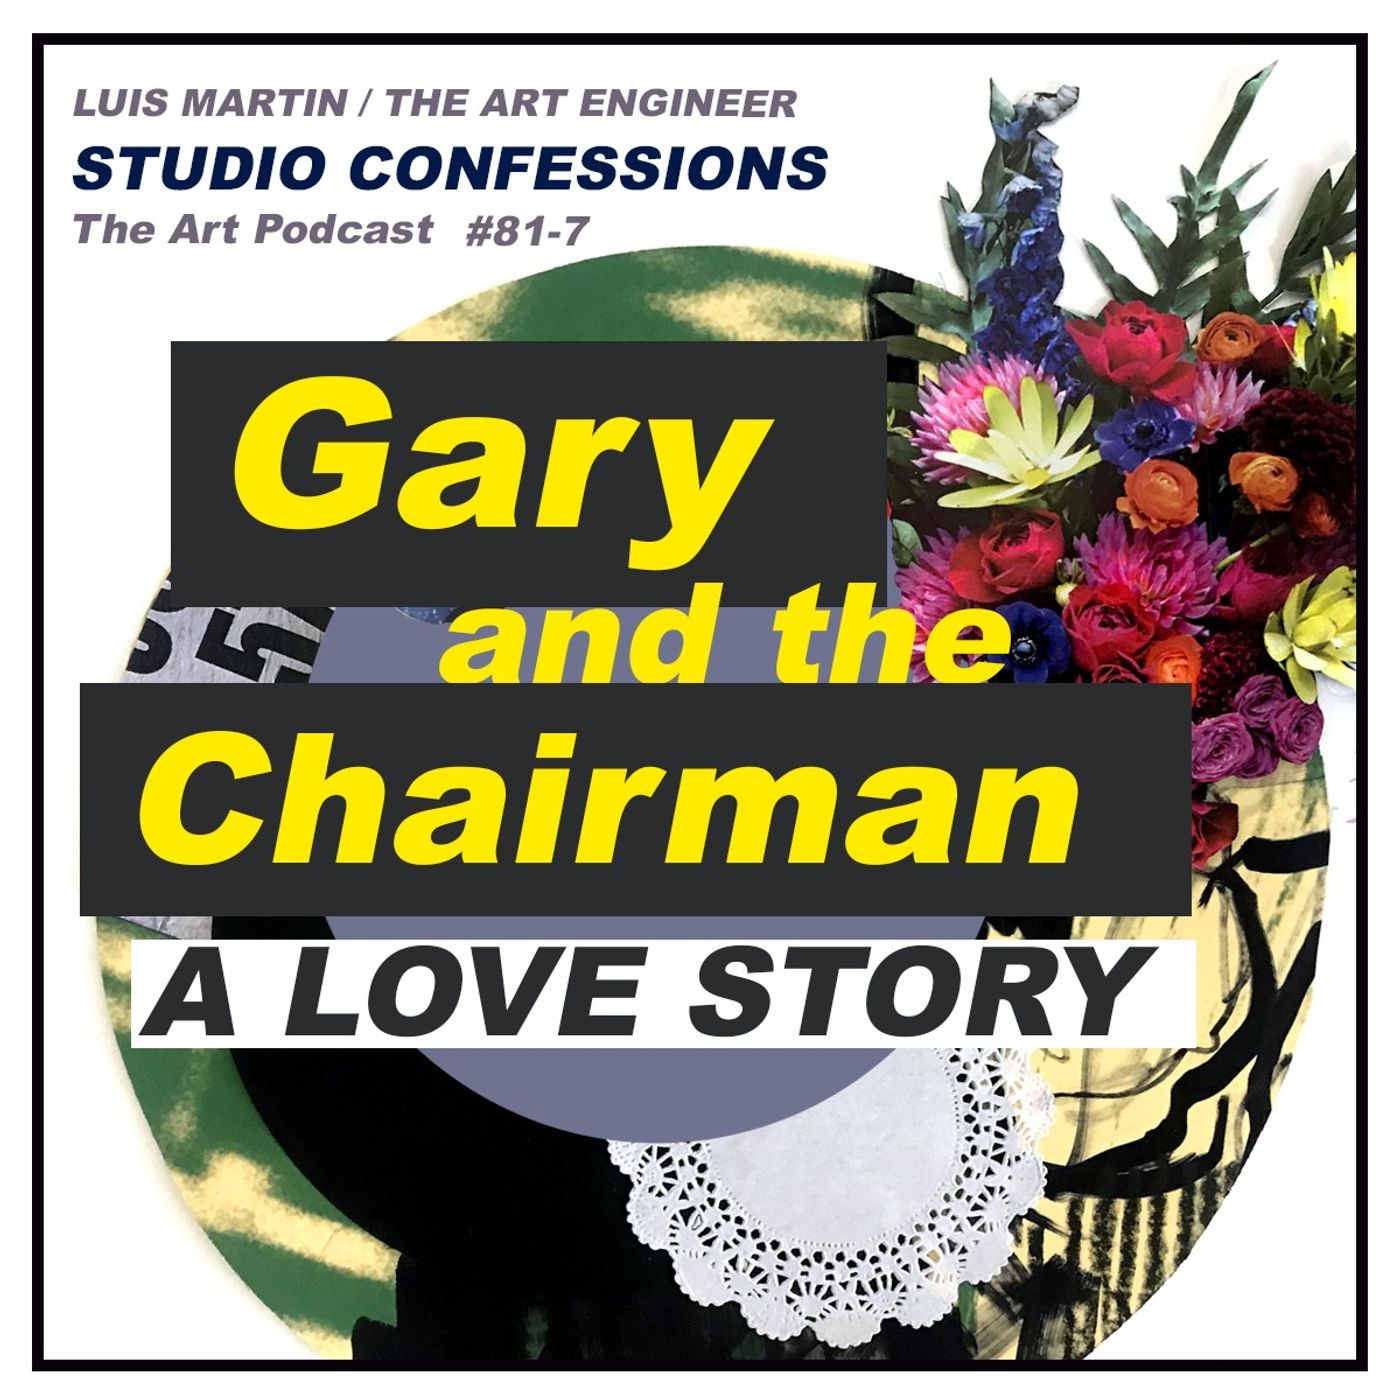 Gary and the Chairman: A love story